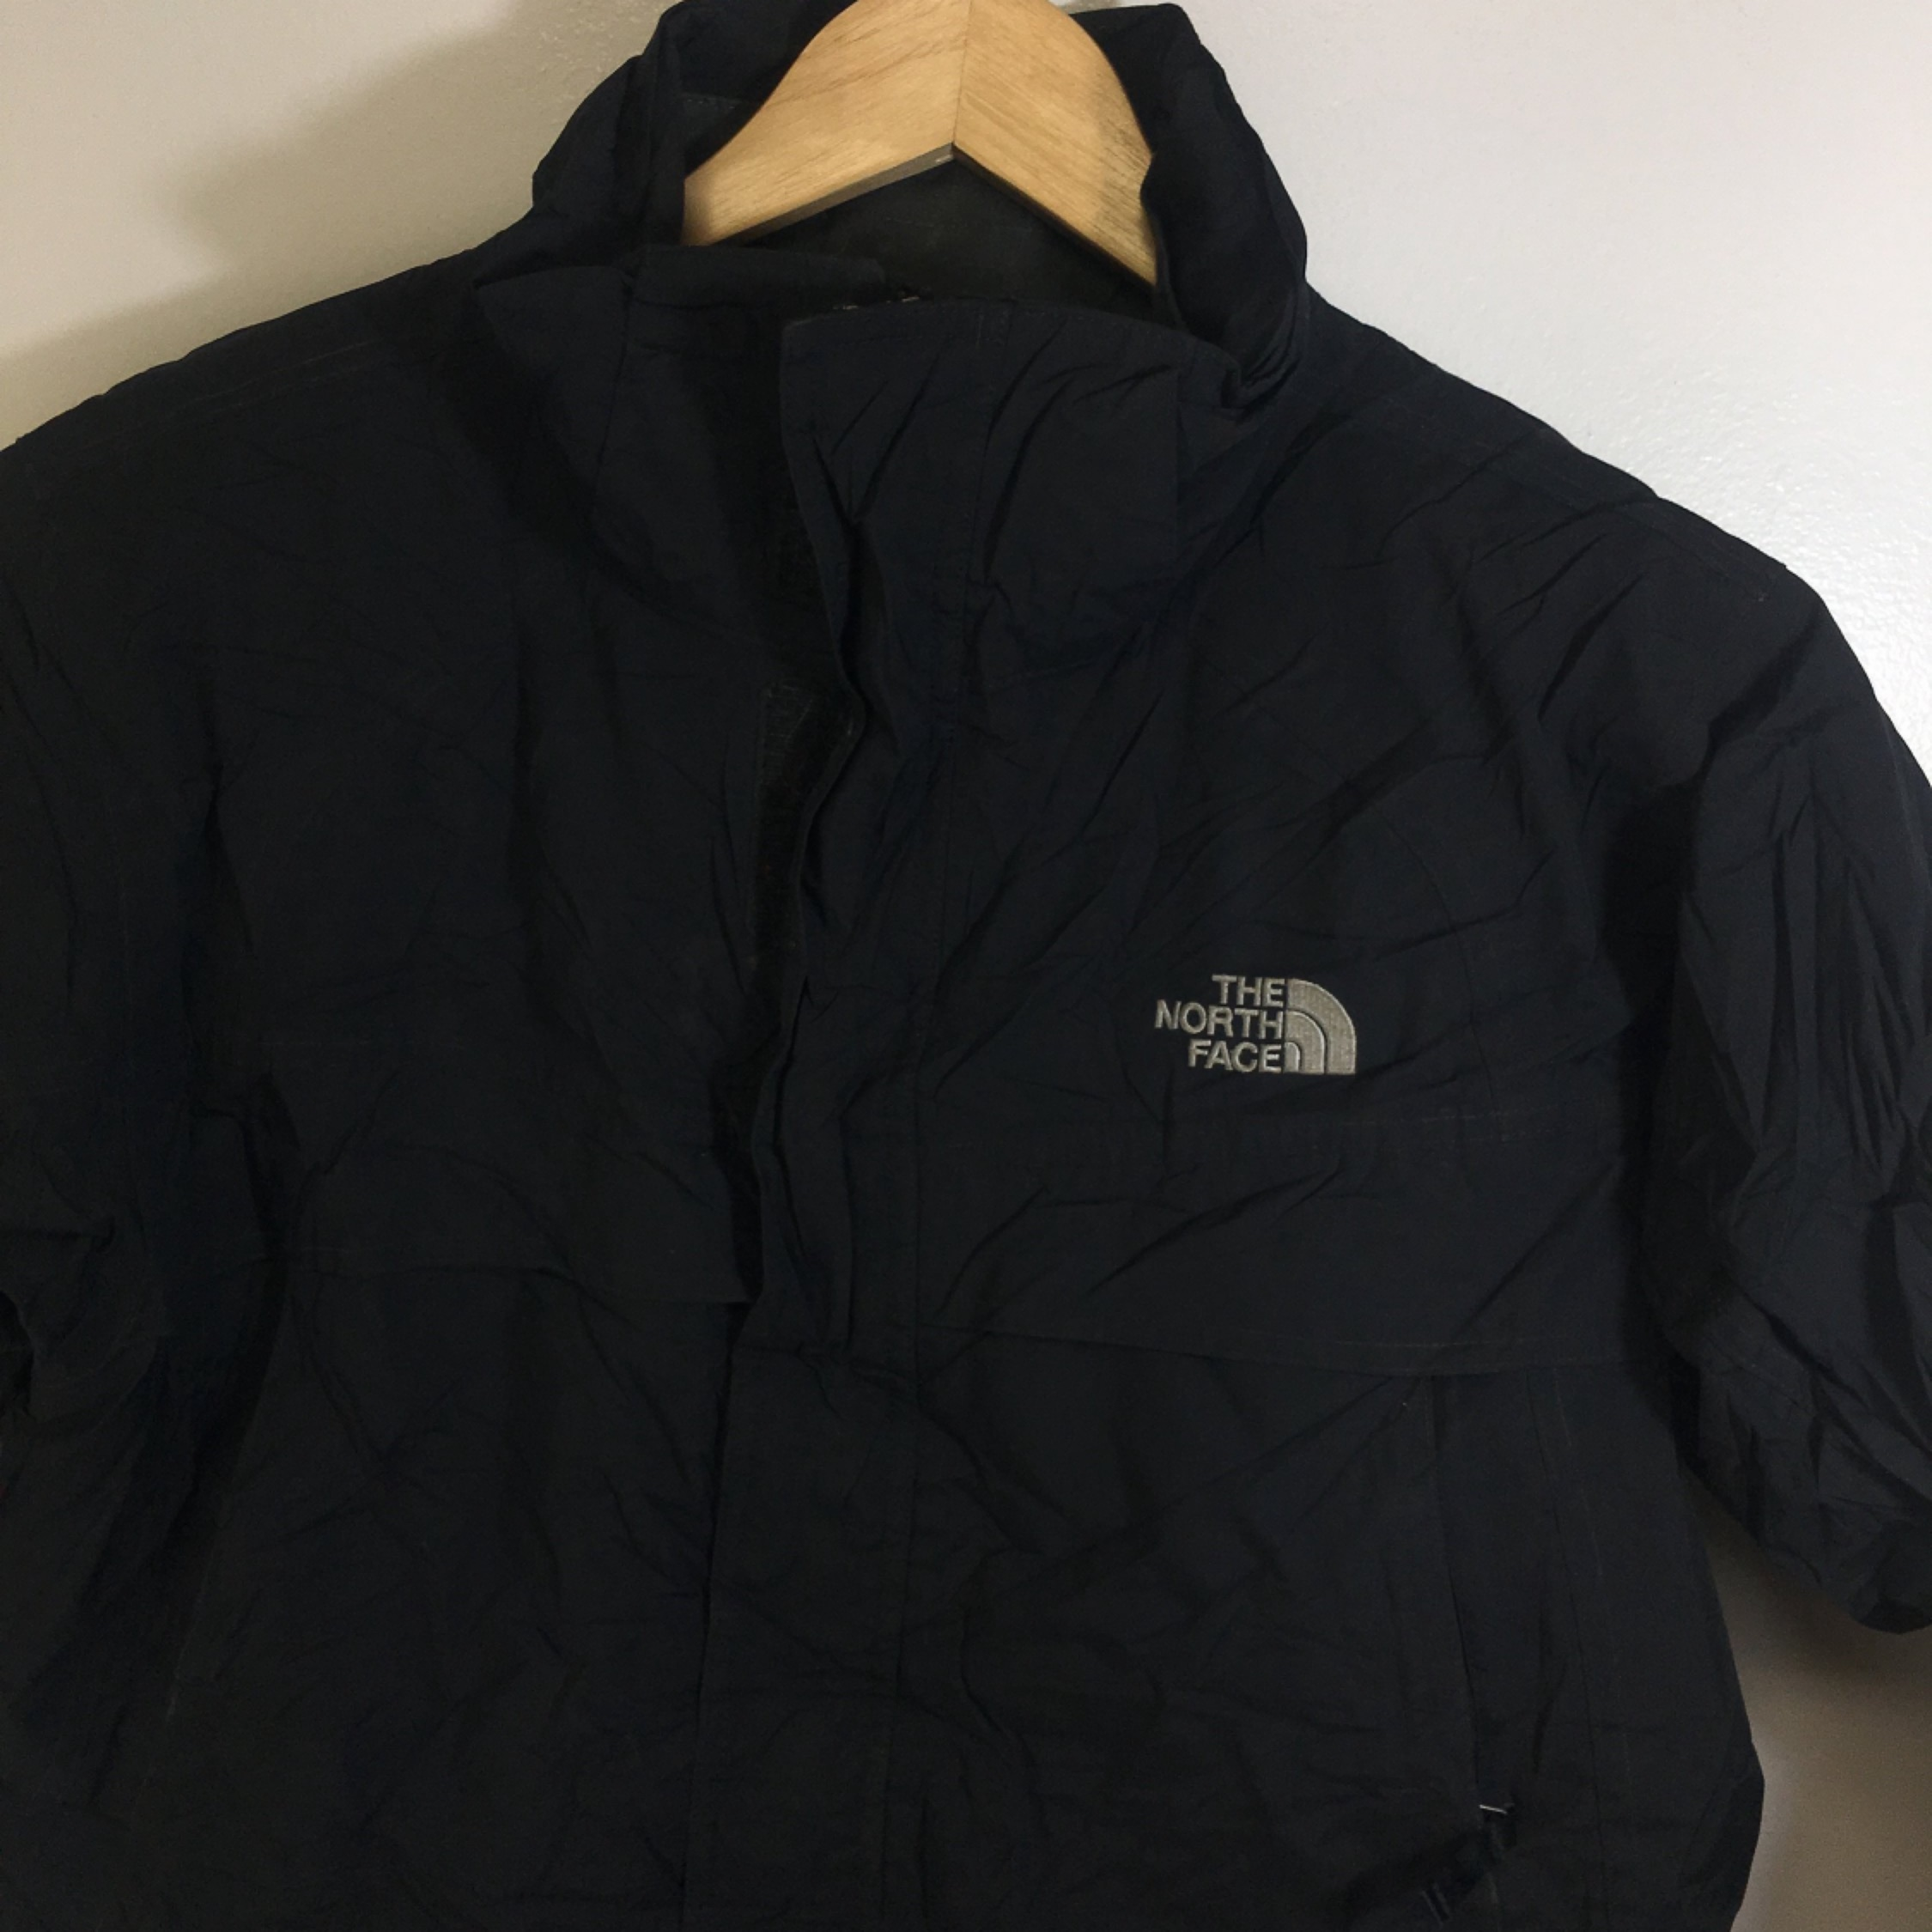 0645638c9 Vintage The North Face 550 Jacket